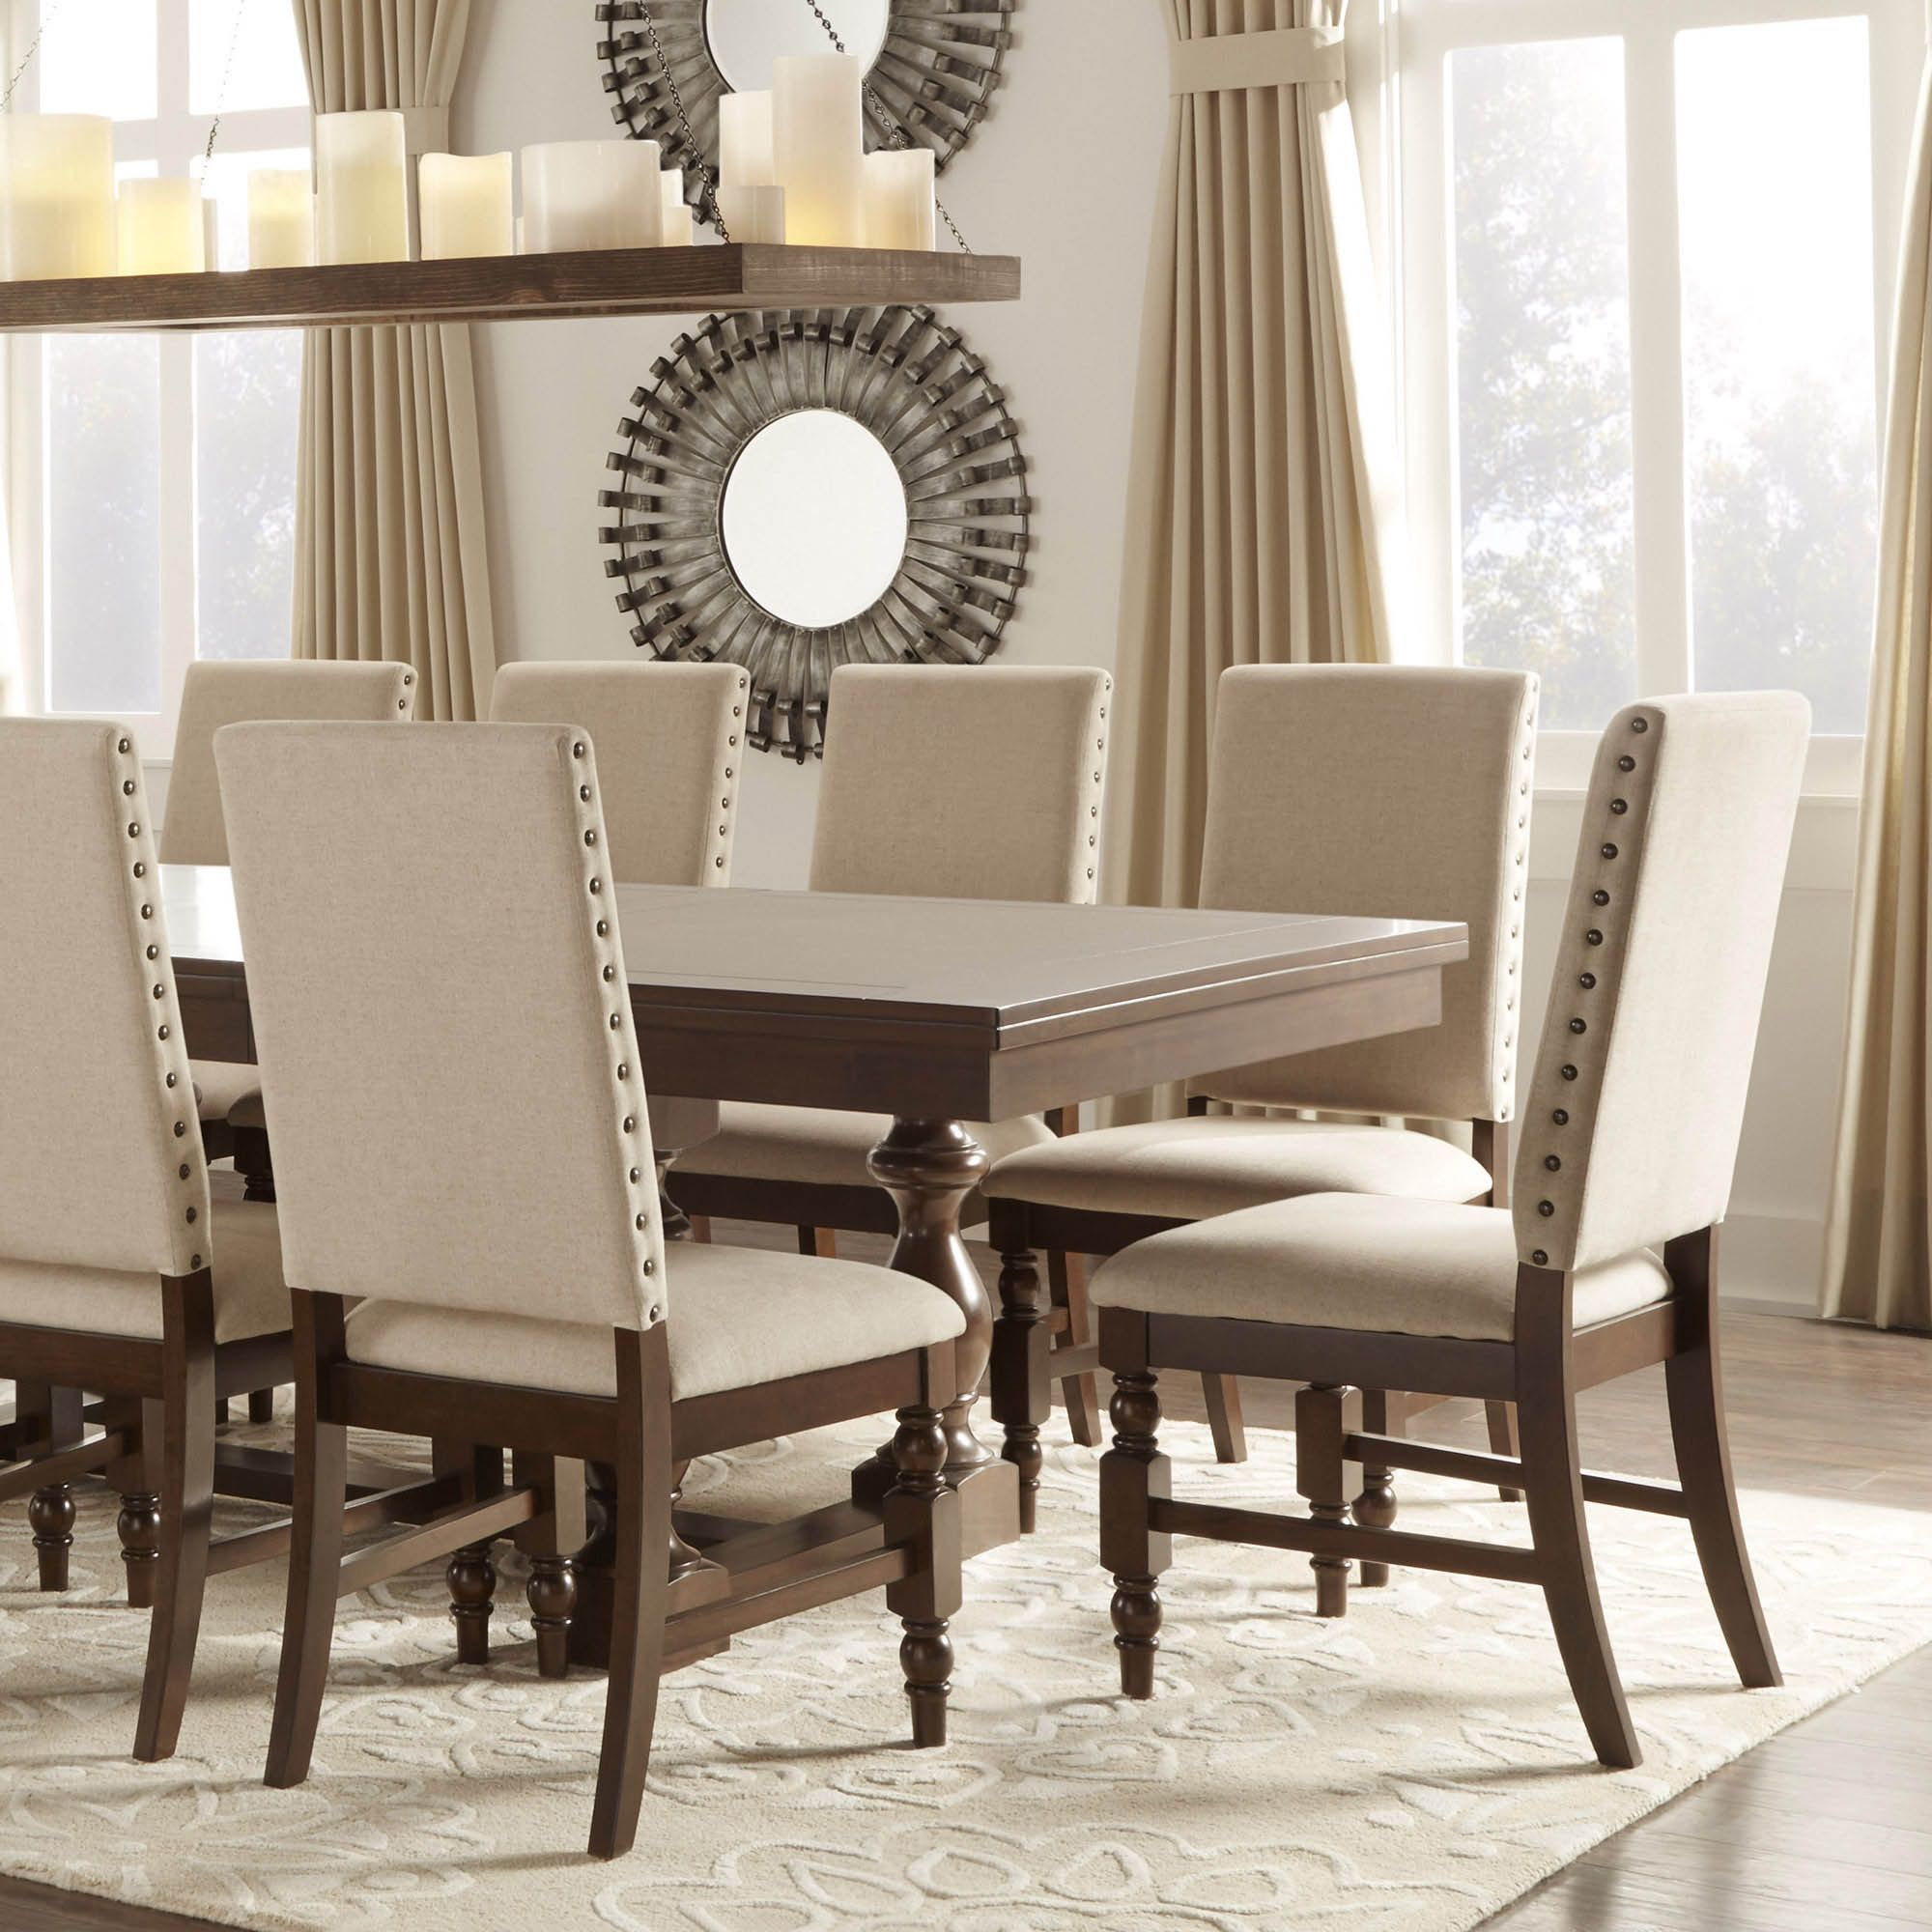 nailhead upholstered dining chair egg cover for sale tribecca home flatiron chairs set of 2 beige linen brown leather